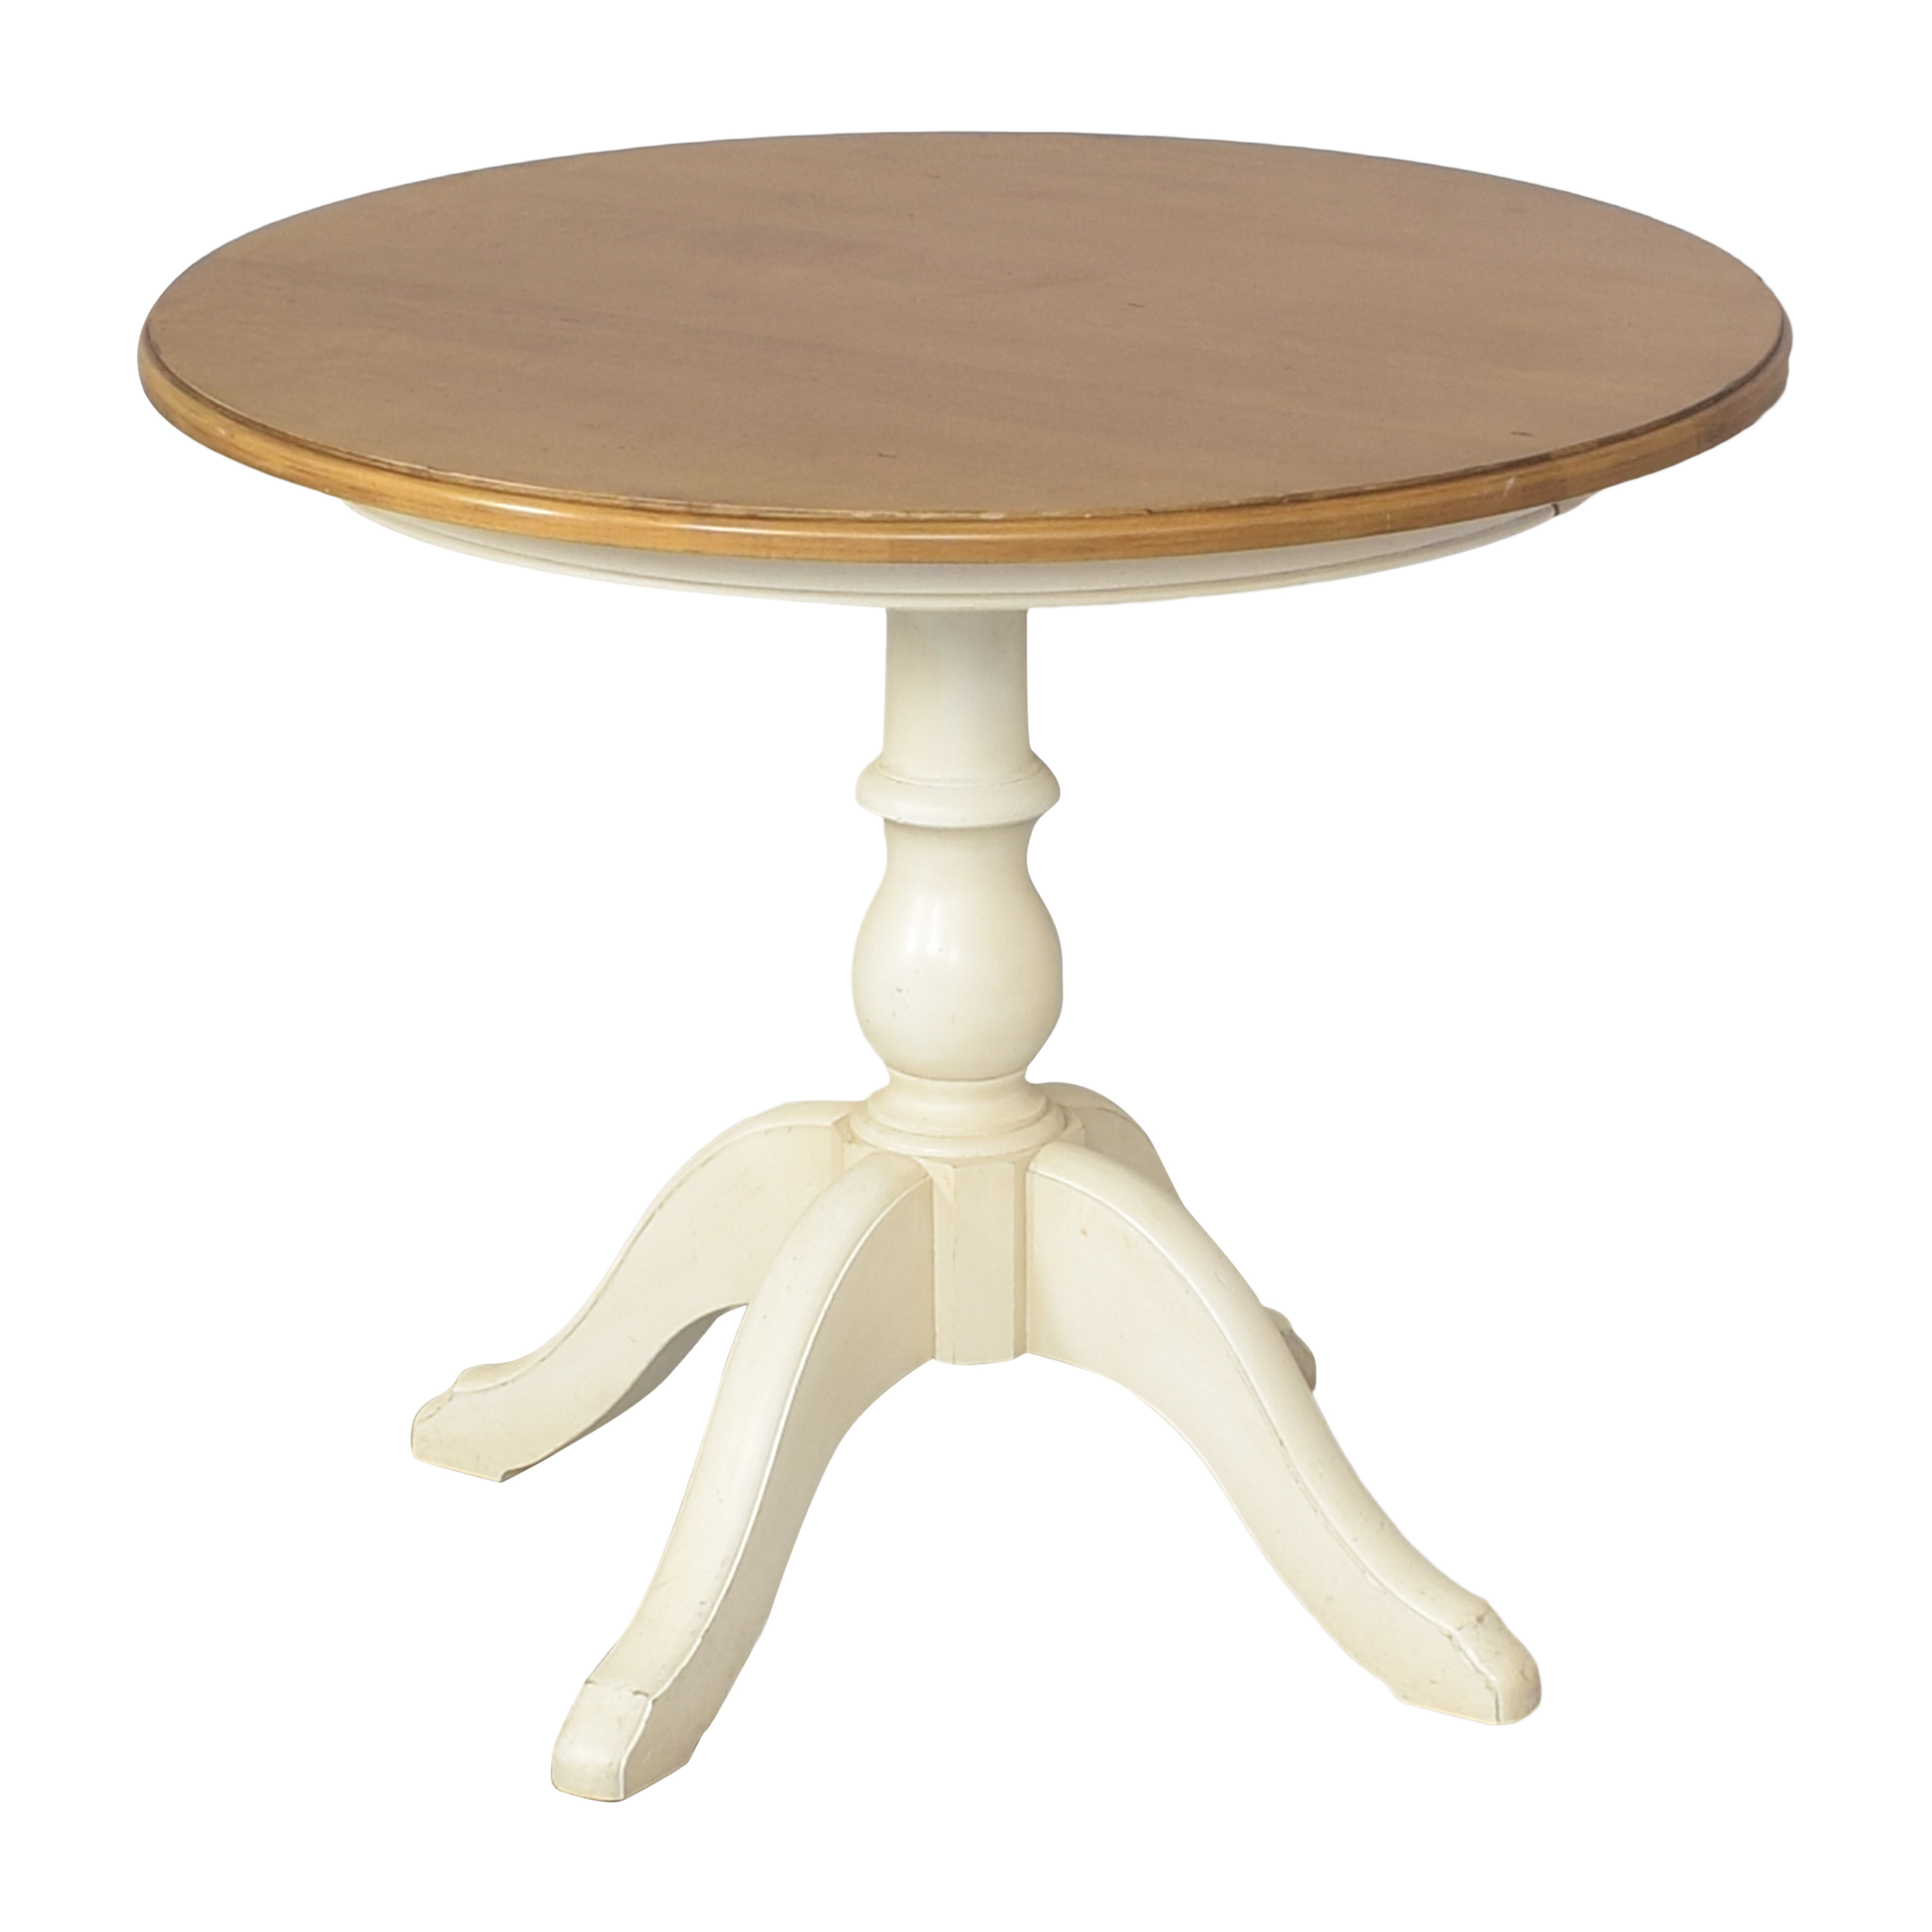 Ethan Allen Ethan Allen New Country Round Dining Table Tables